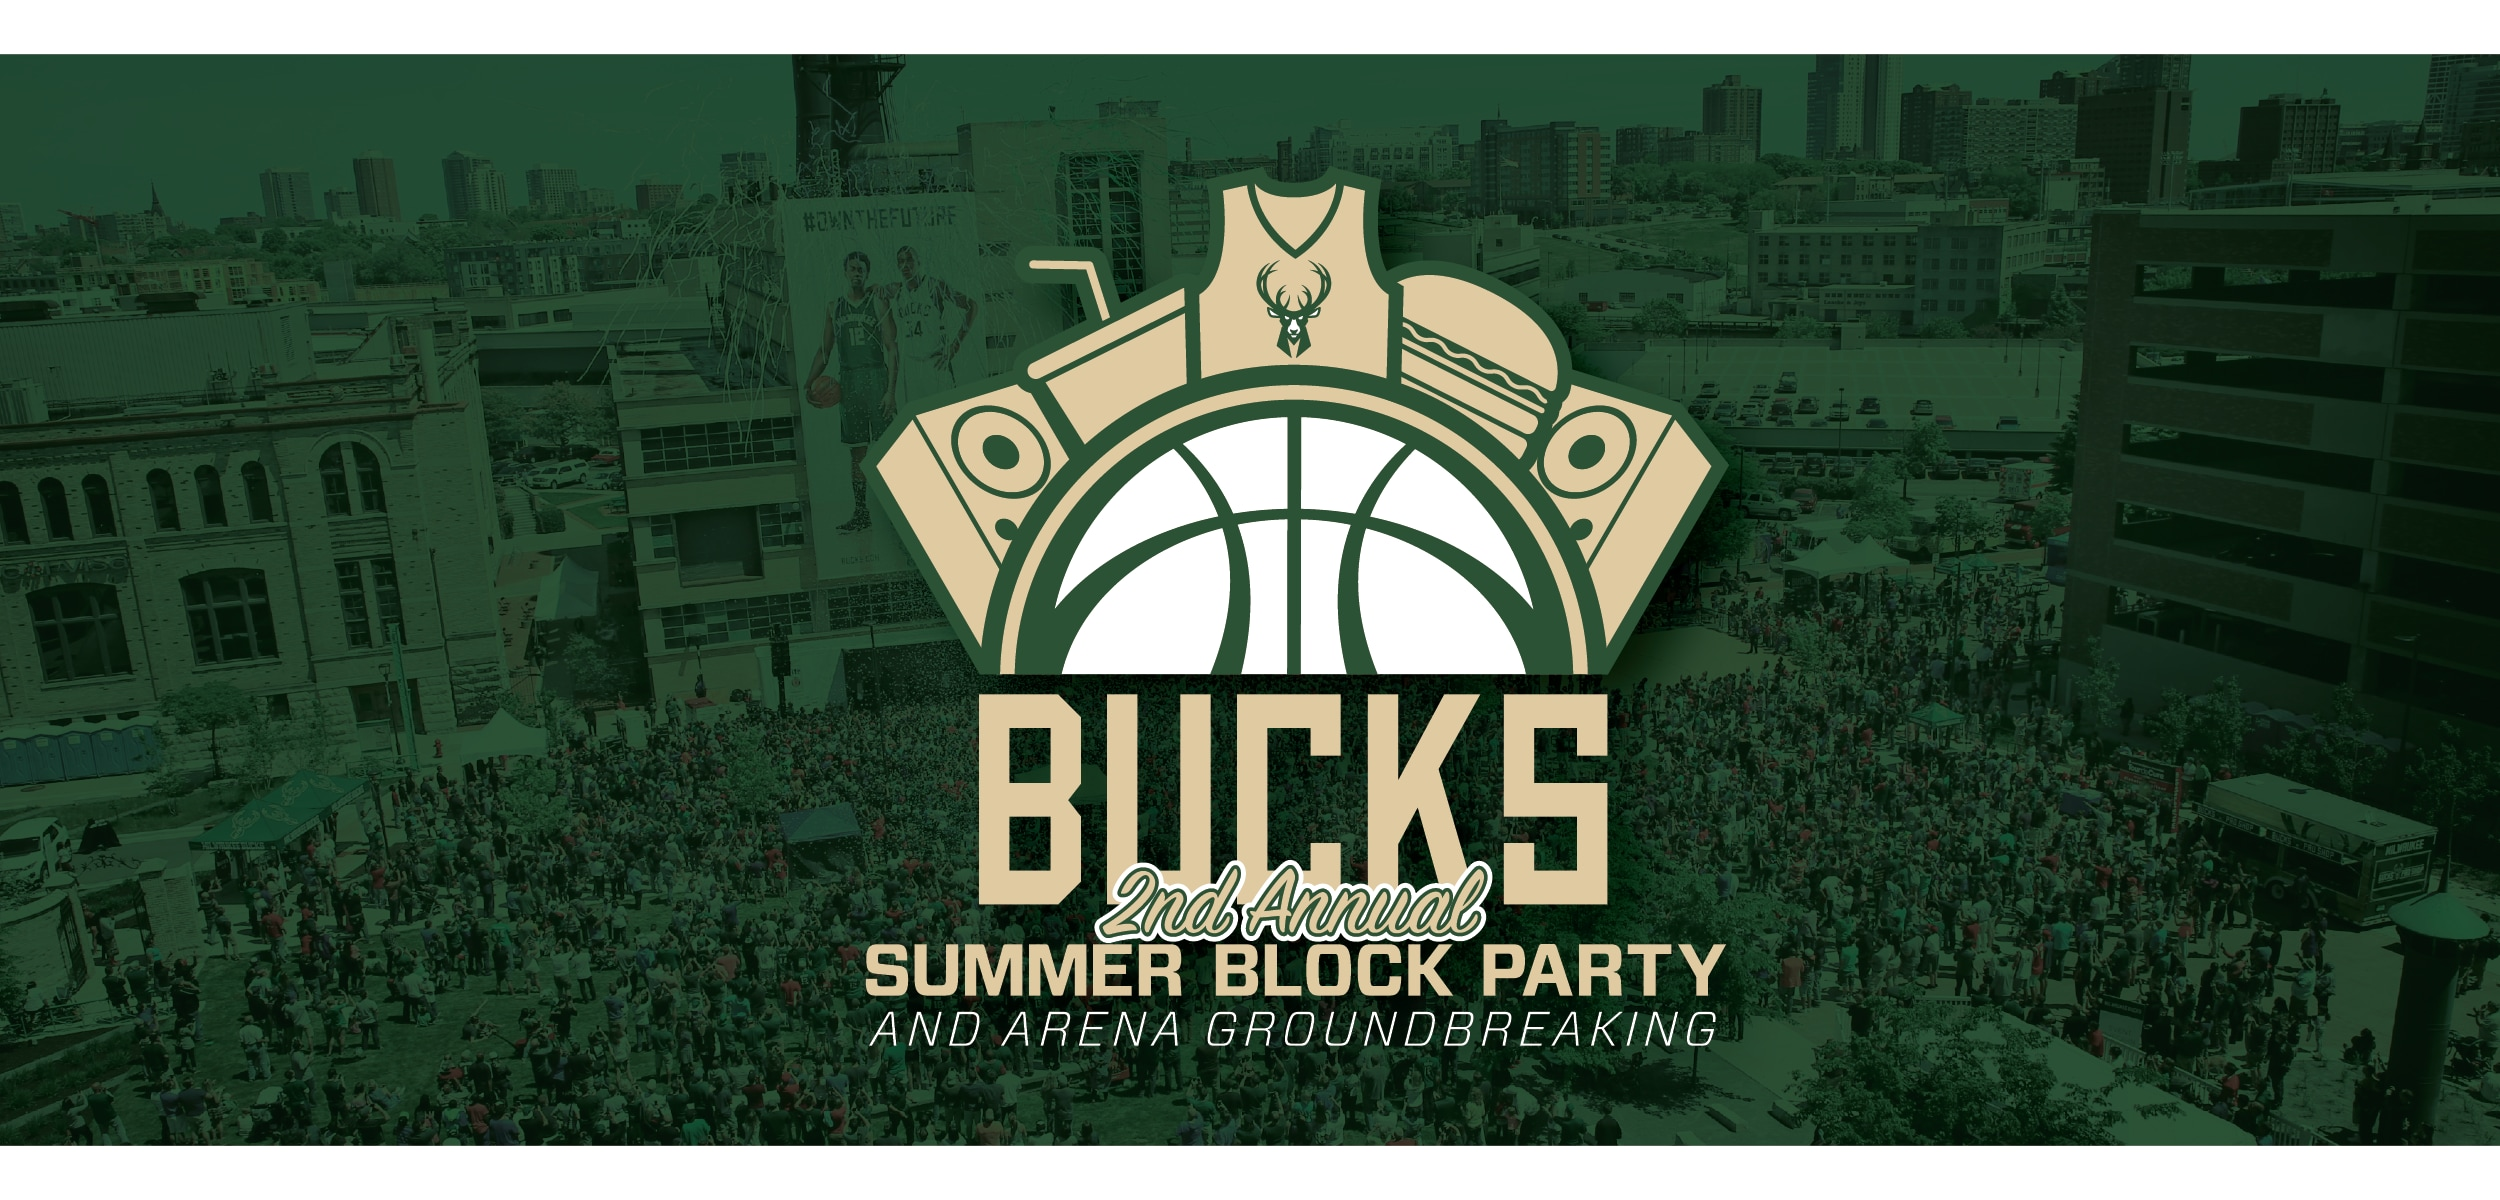 Bucksblockparty_vipticket_emailheader_600x288-01